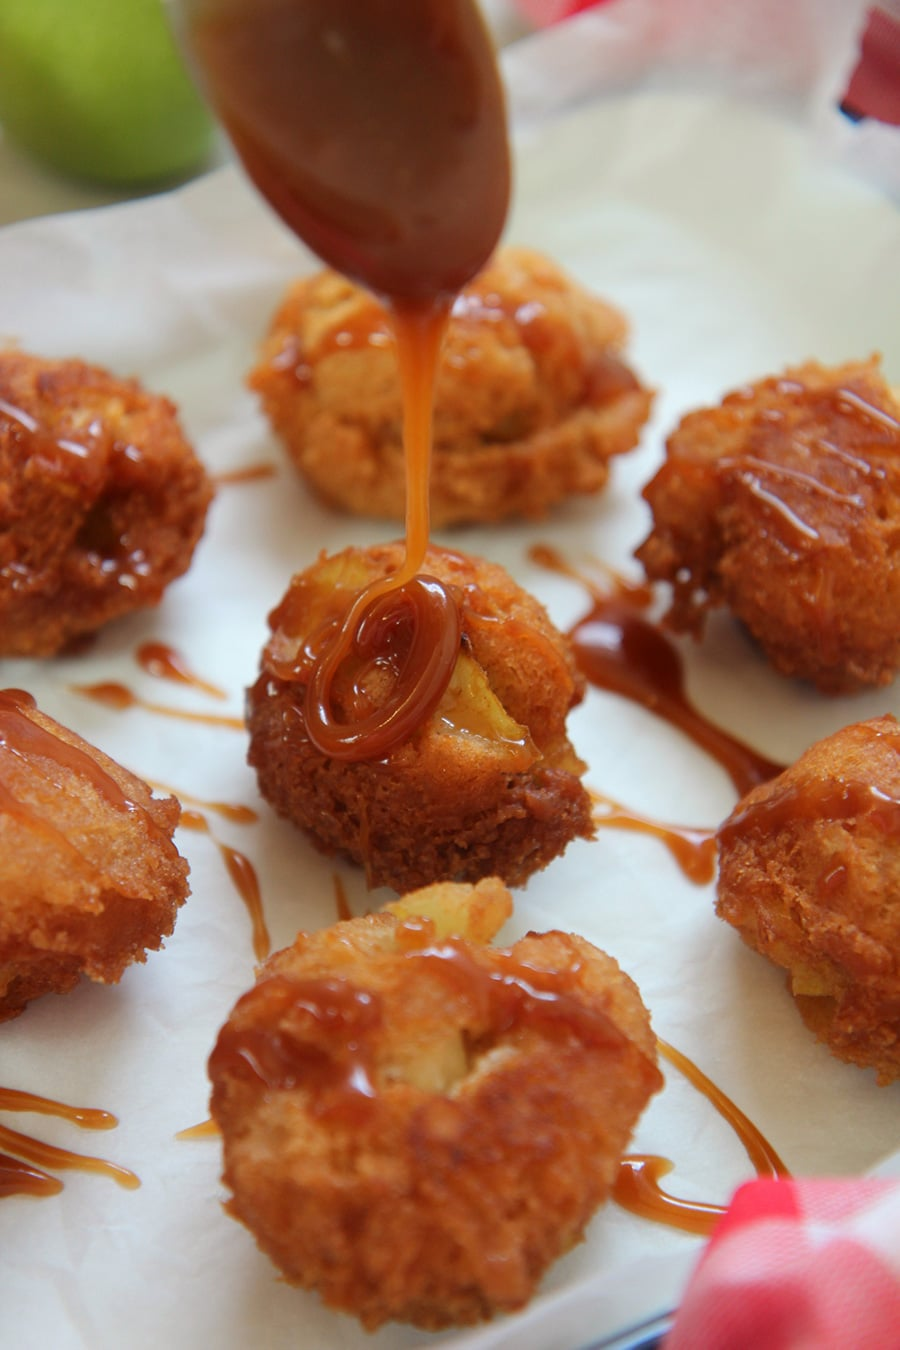 fritters on a white surface with a spoon drizzling caramel sauce on top of one fritter.